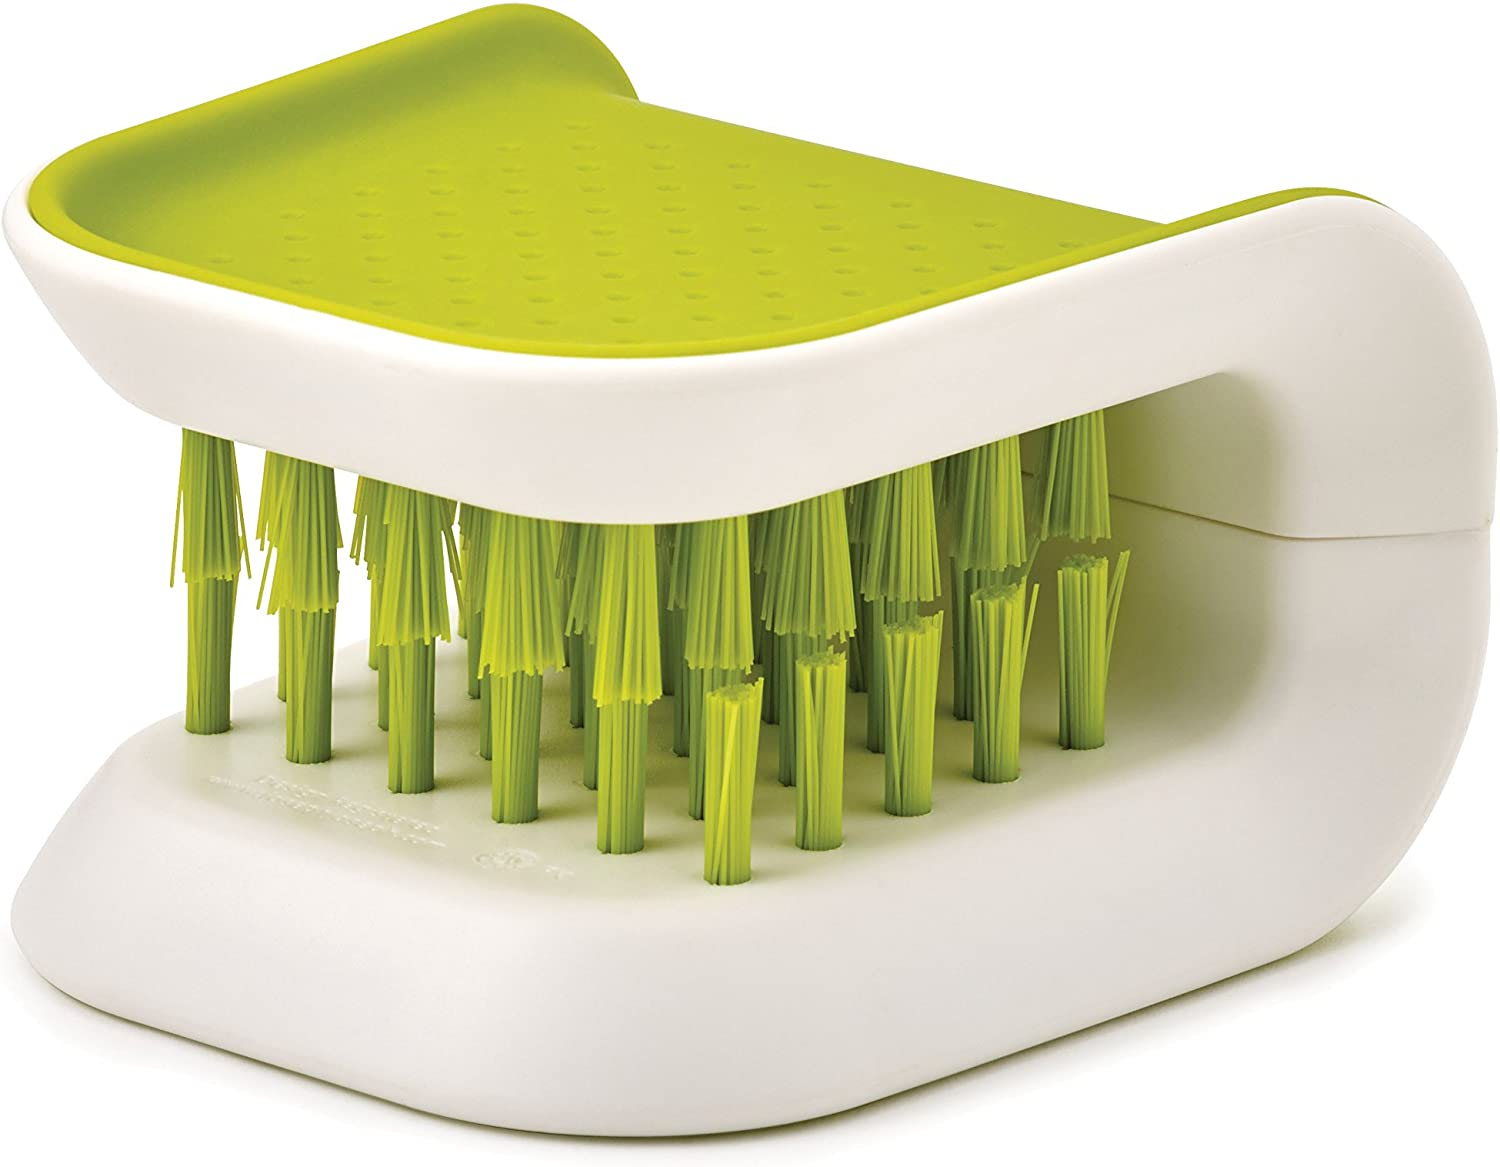 Joseph Joseph BladeBrush Knife and Cutlery Cleaner Brush Bristle Scrub Kitchen Washing Non-Slip, One Size, Green